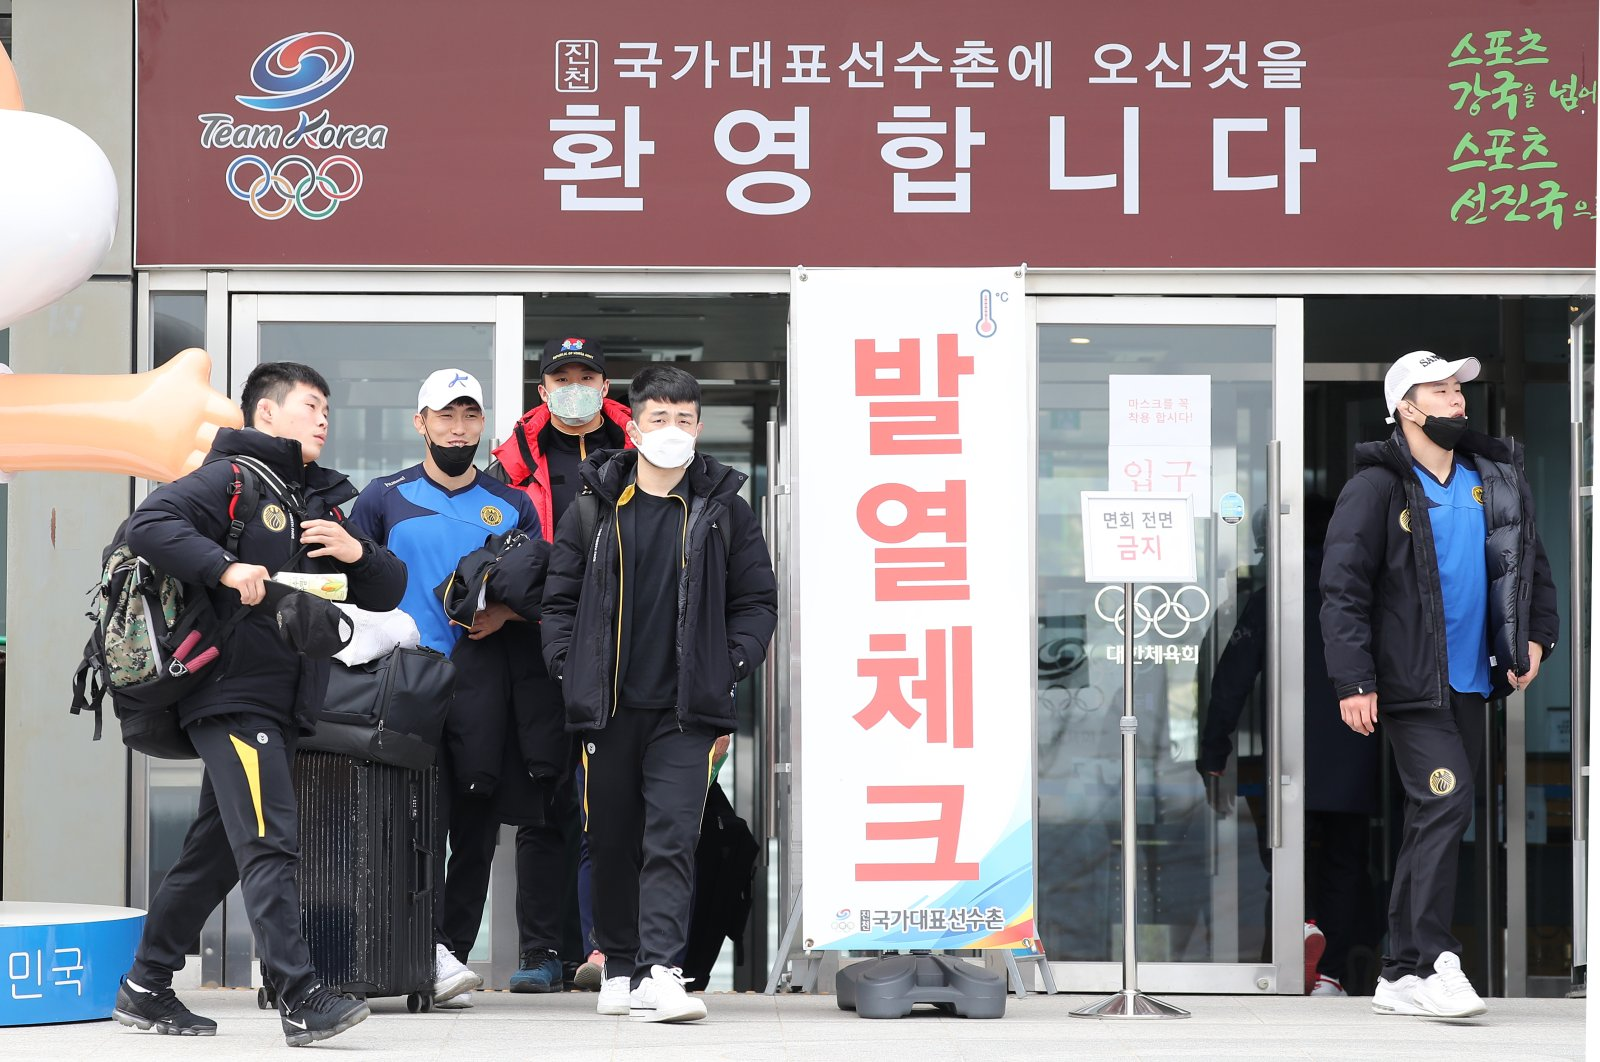 South Korean athletes hoping to participate in the postponed Tokyo Olympics leave the National Training Center after the center temporarily closed amid the spread of the coronavirus in Jincheon, 90 kilometers (56 miles) southeast from Seoul, South Korea, March 26, 2020. (Reuters Photo)